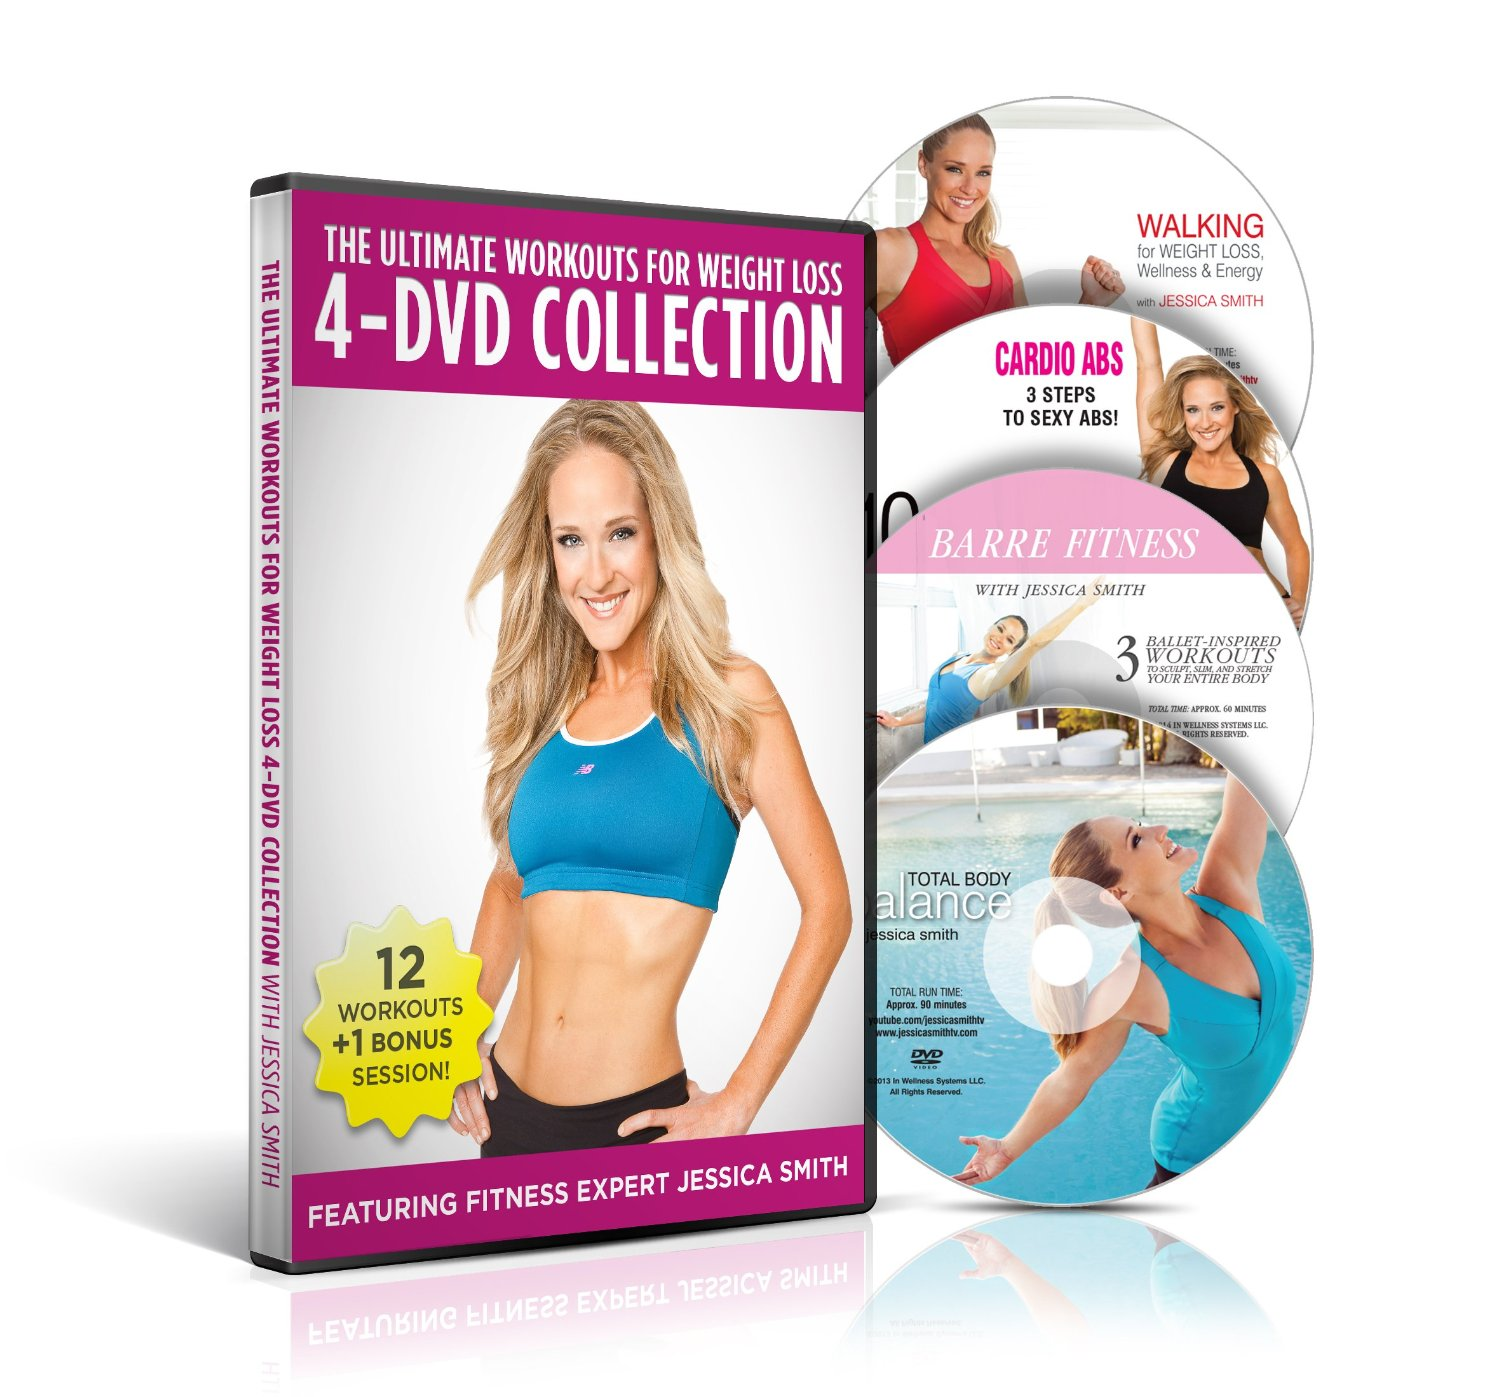 The Ultimate Workouts For Weight Loss 4 Dvd Collection